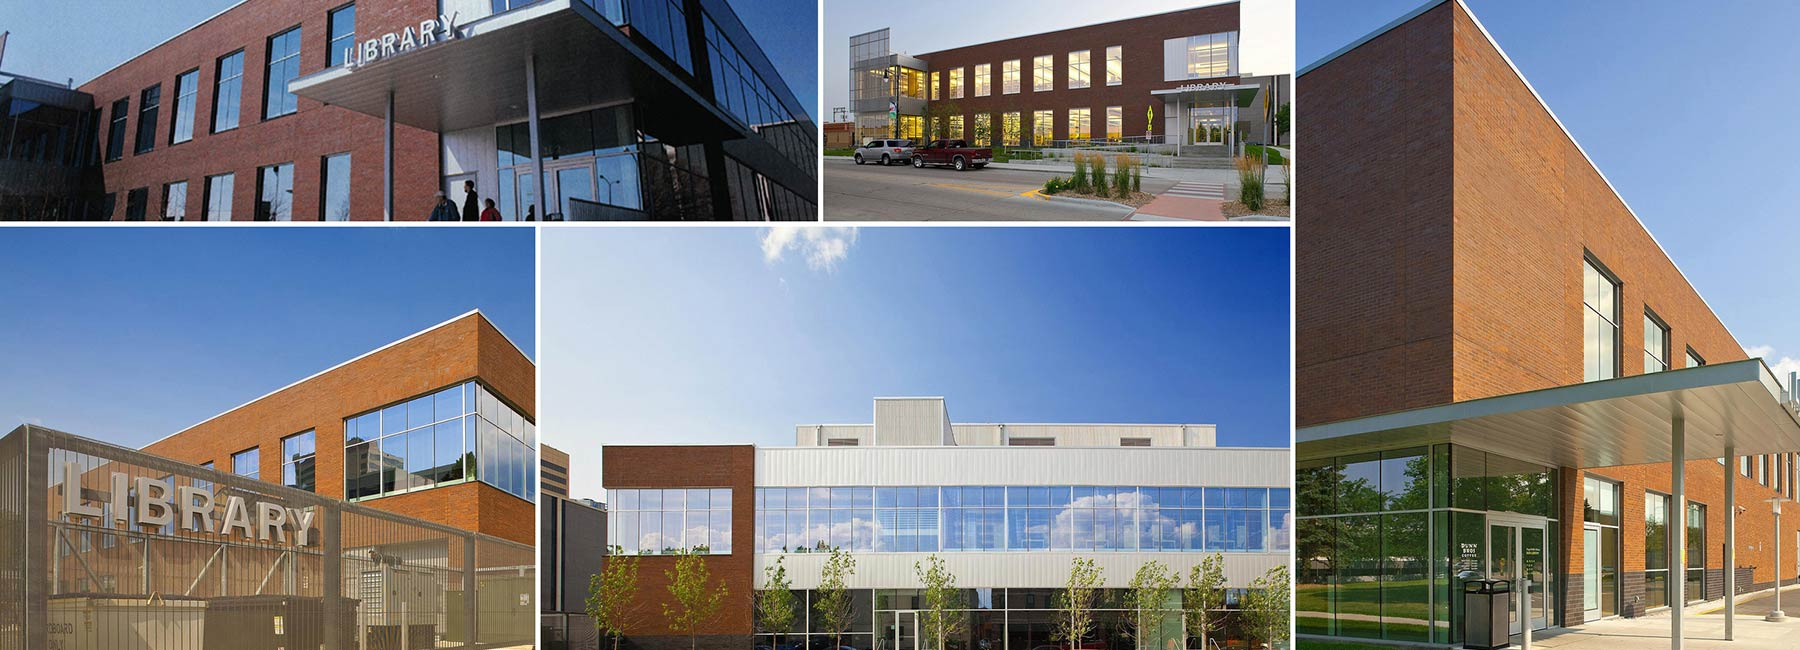 Mechanical & Electrical Commissioning Services - Fargo, ND Public Library